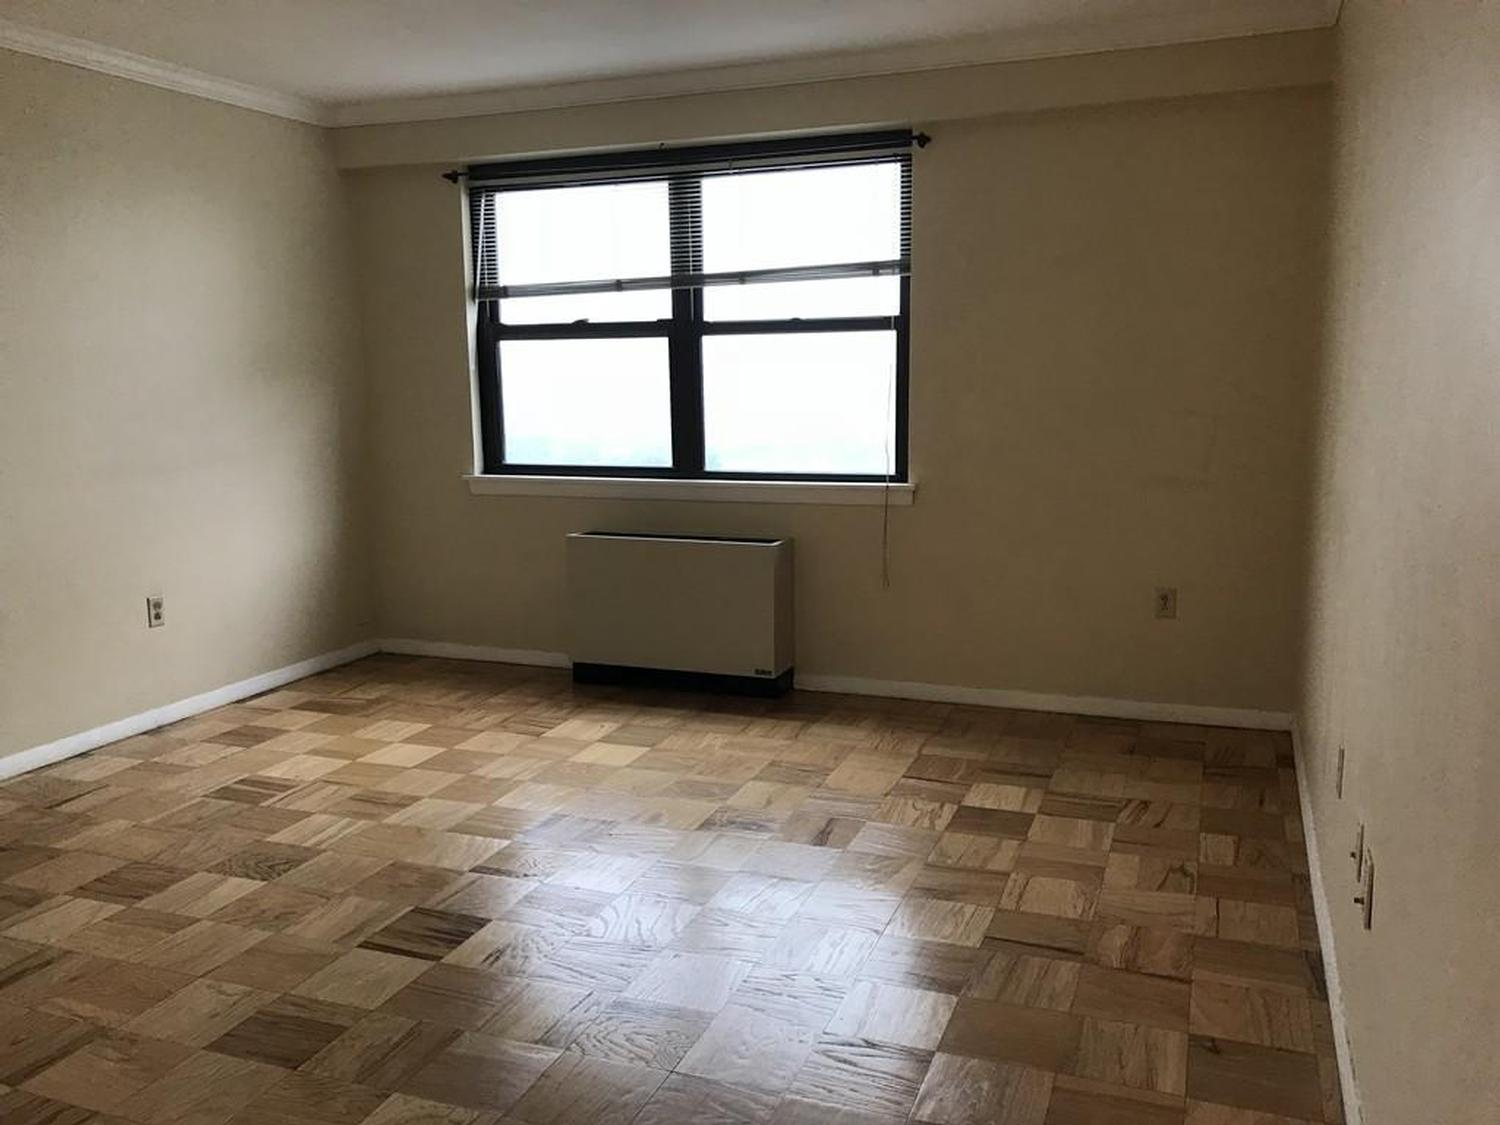 Photo of 8 Whittier Place Boston - West End, MA 02114